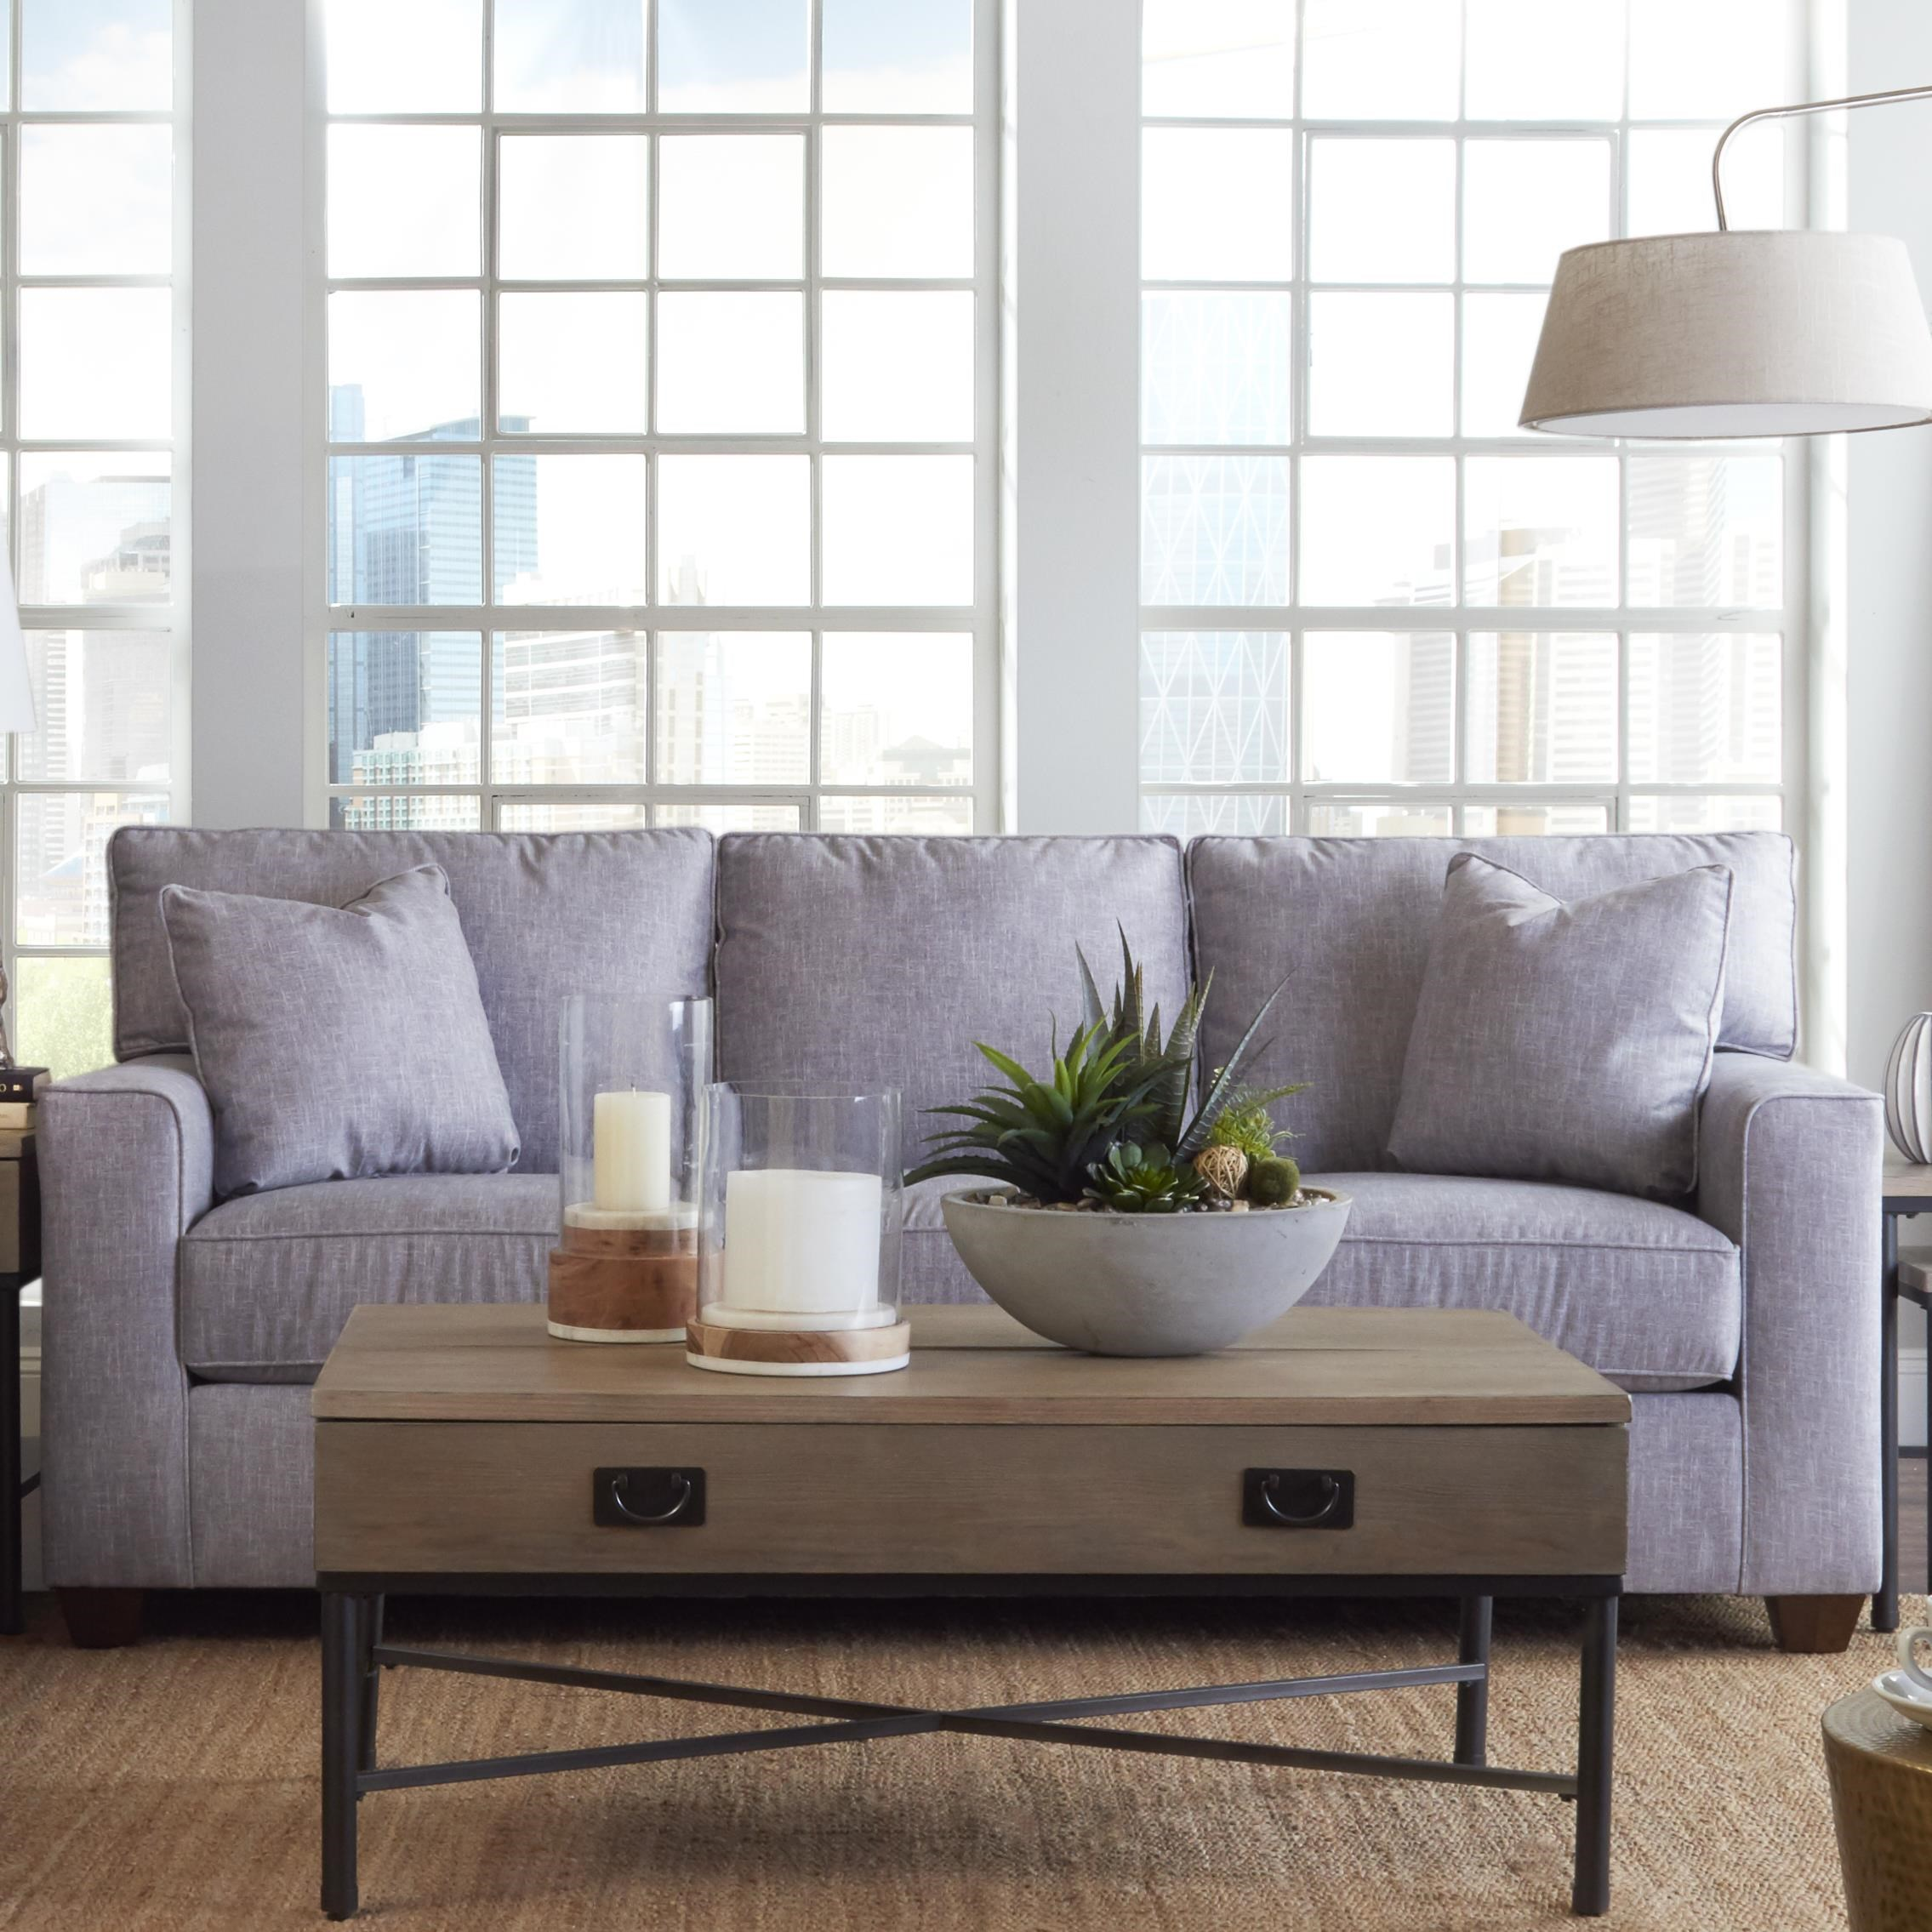 Contemporary 3-Seat Sleeper Sofa with Innerspring Mattress